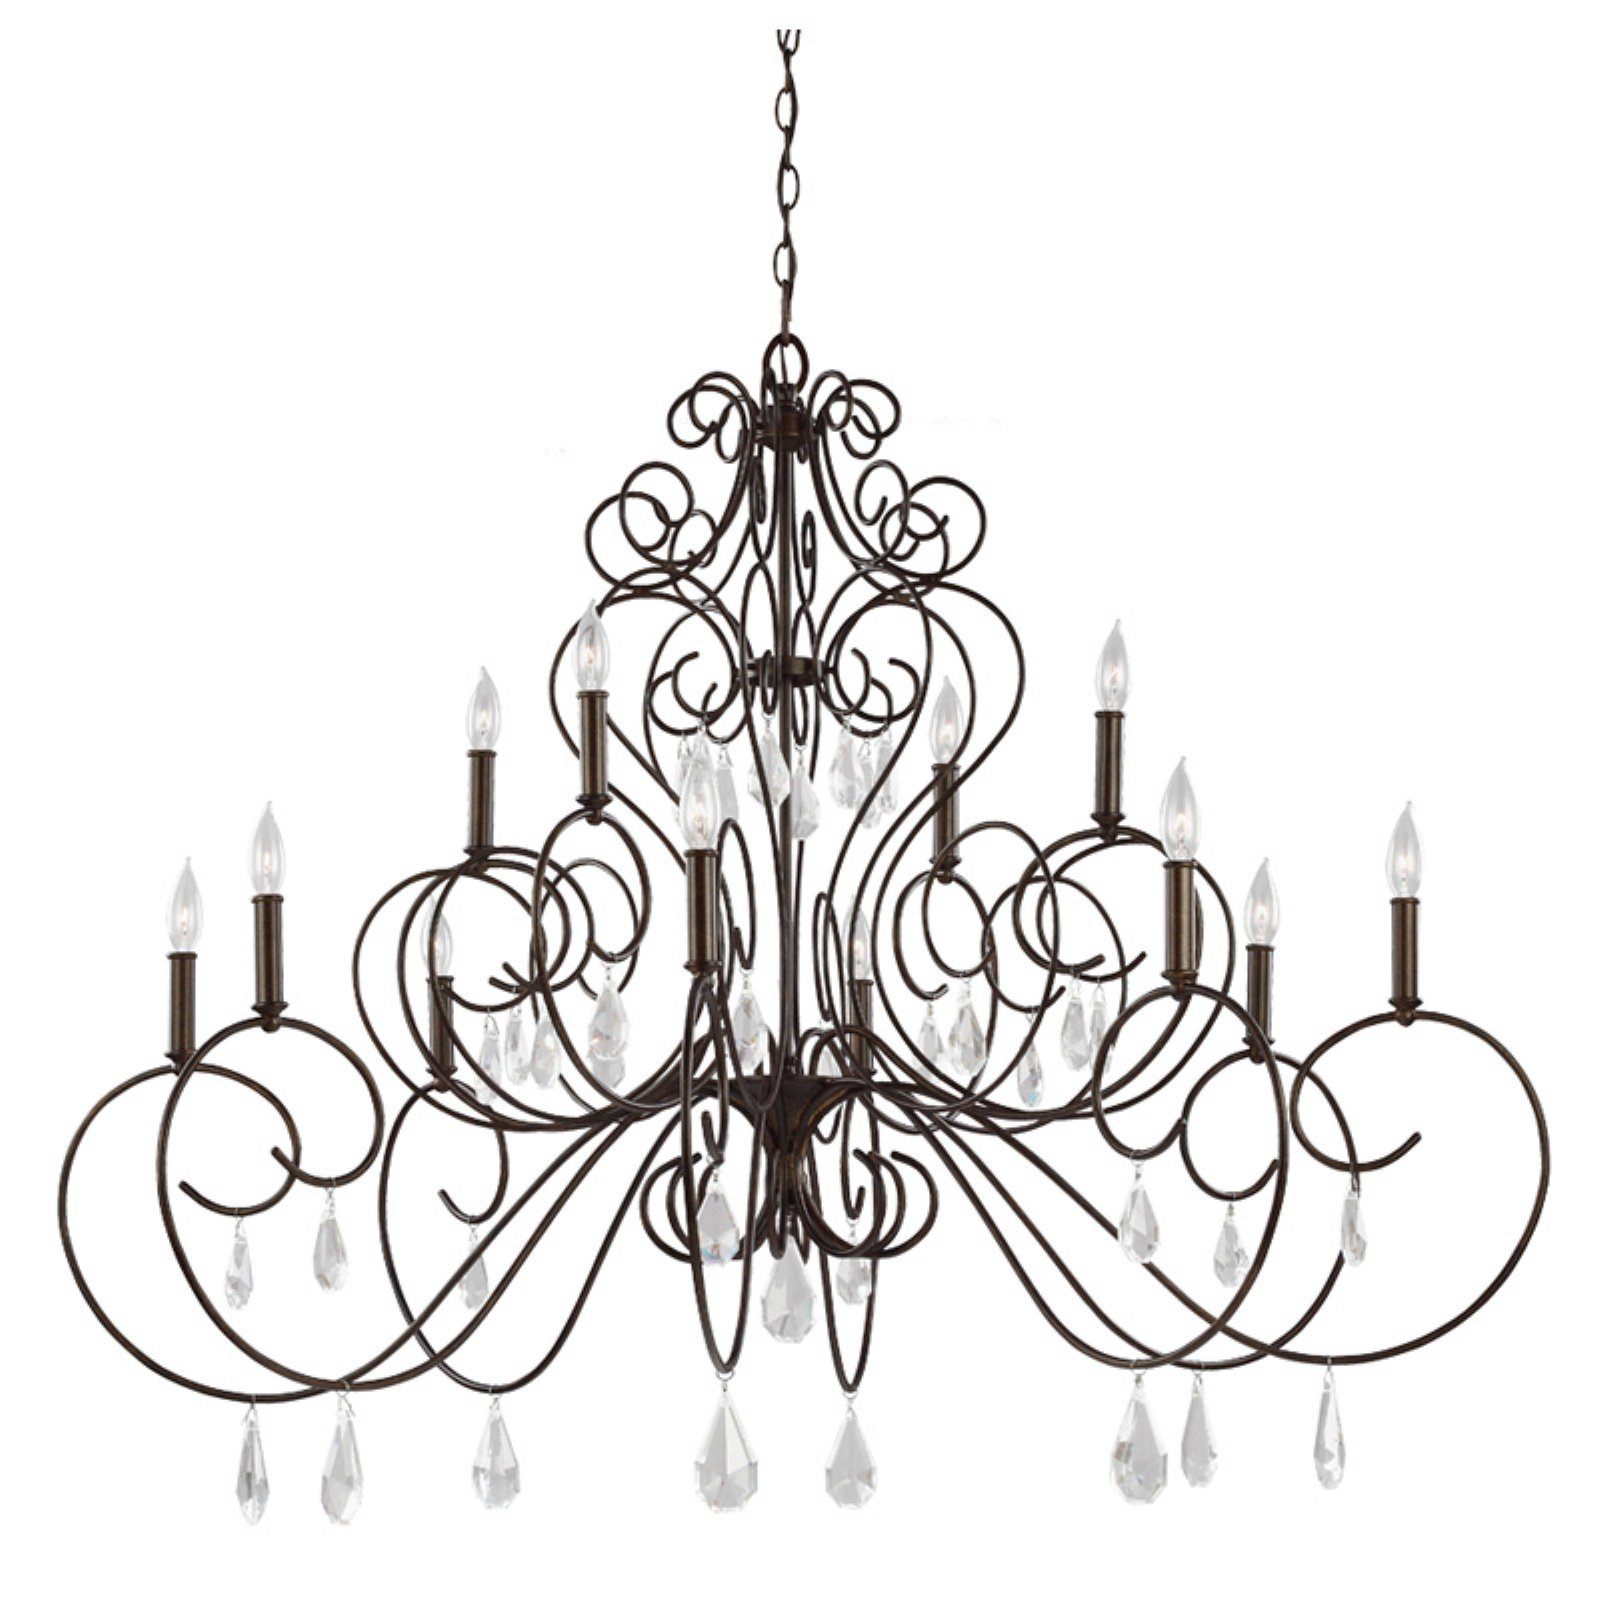 Feiss Angelette F3043 Chandelier by Murray Feiss